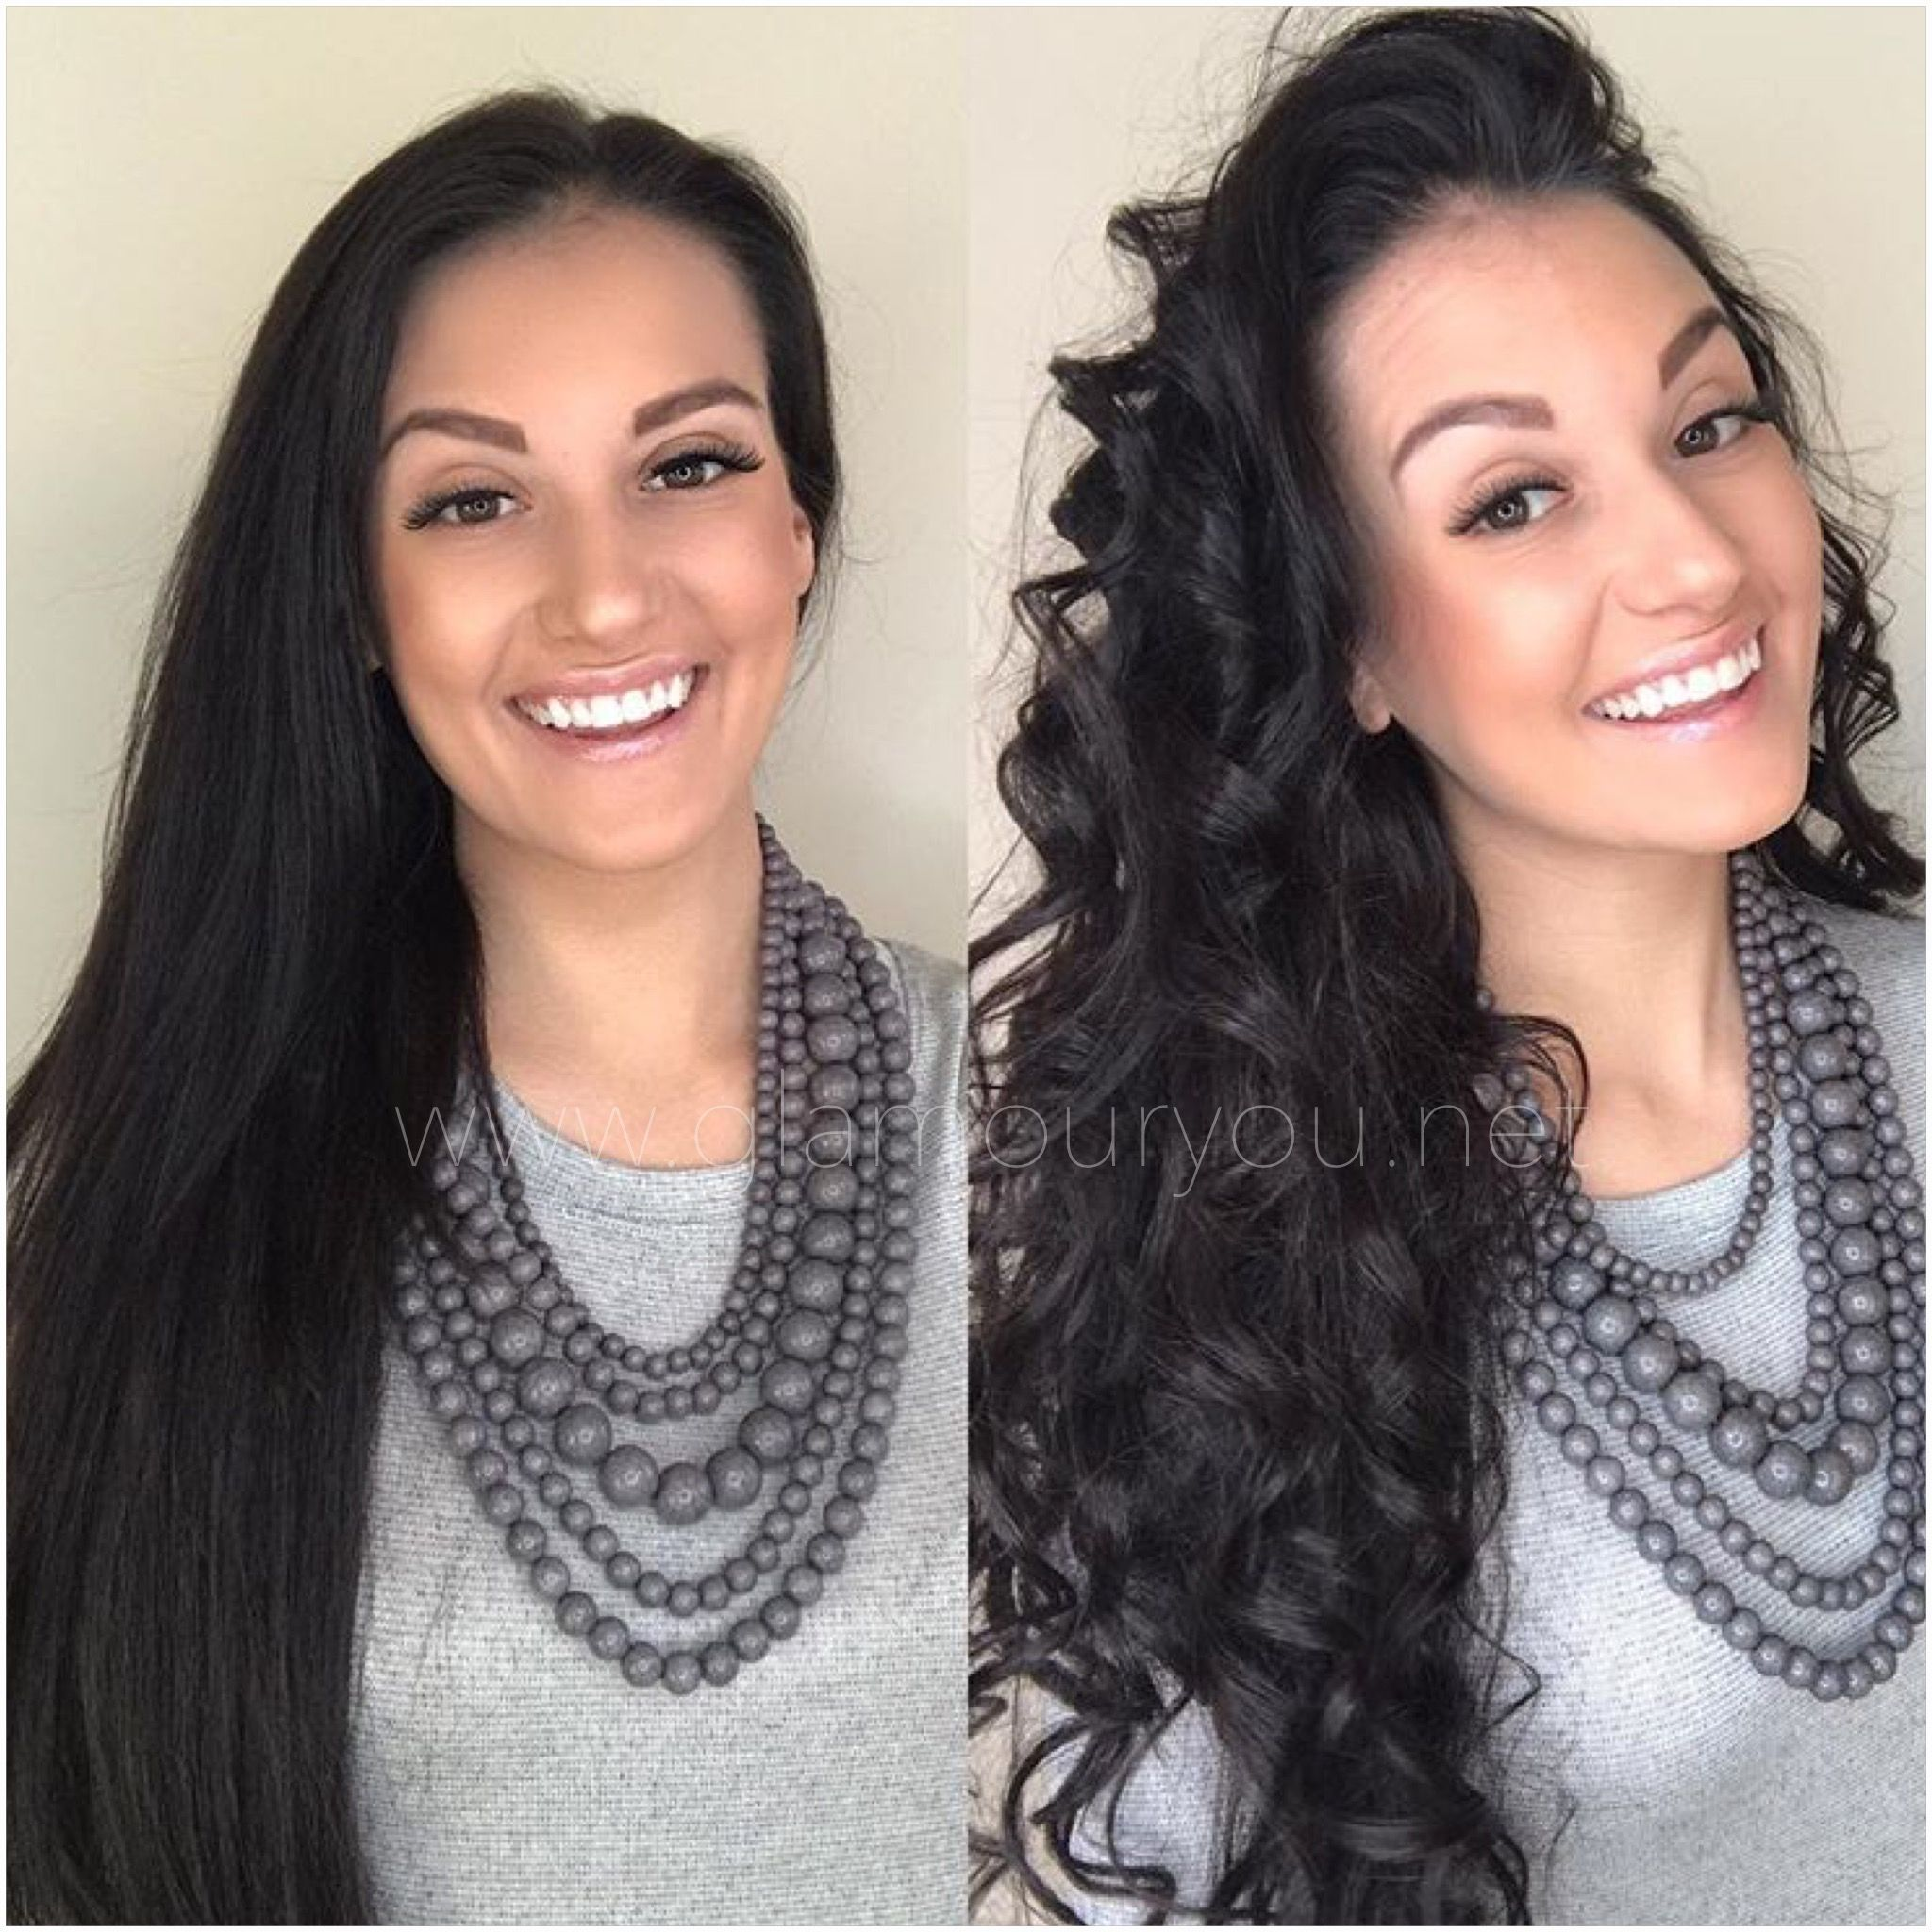 Microlink Hair Extensions Done By Gina At Glamouryou